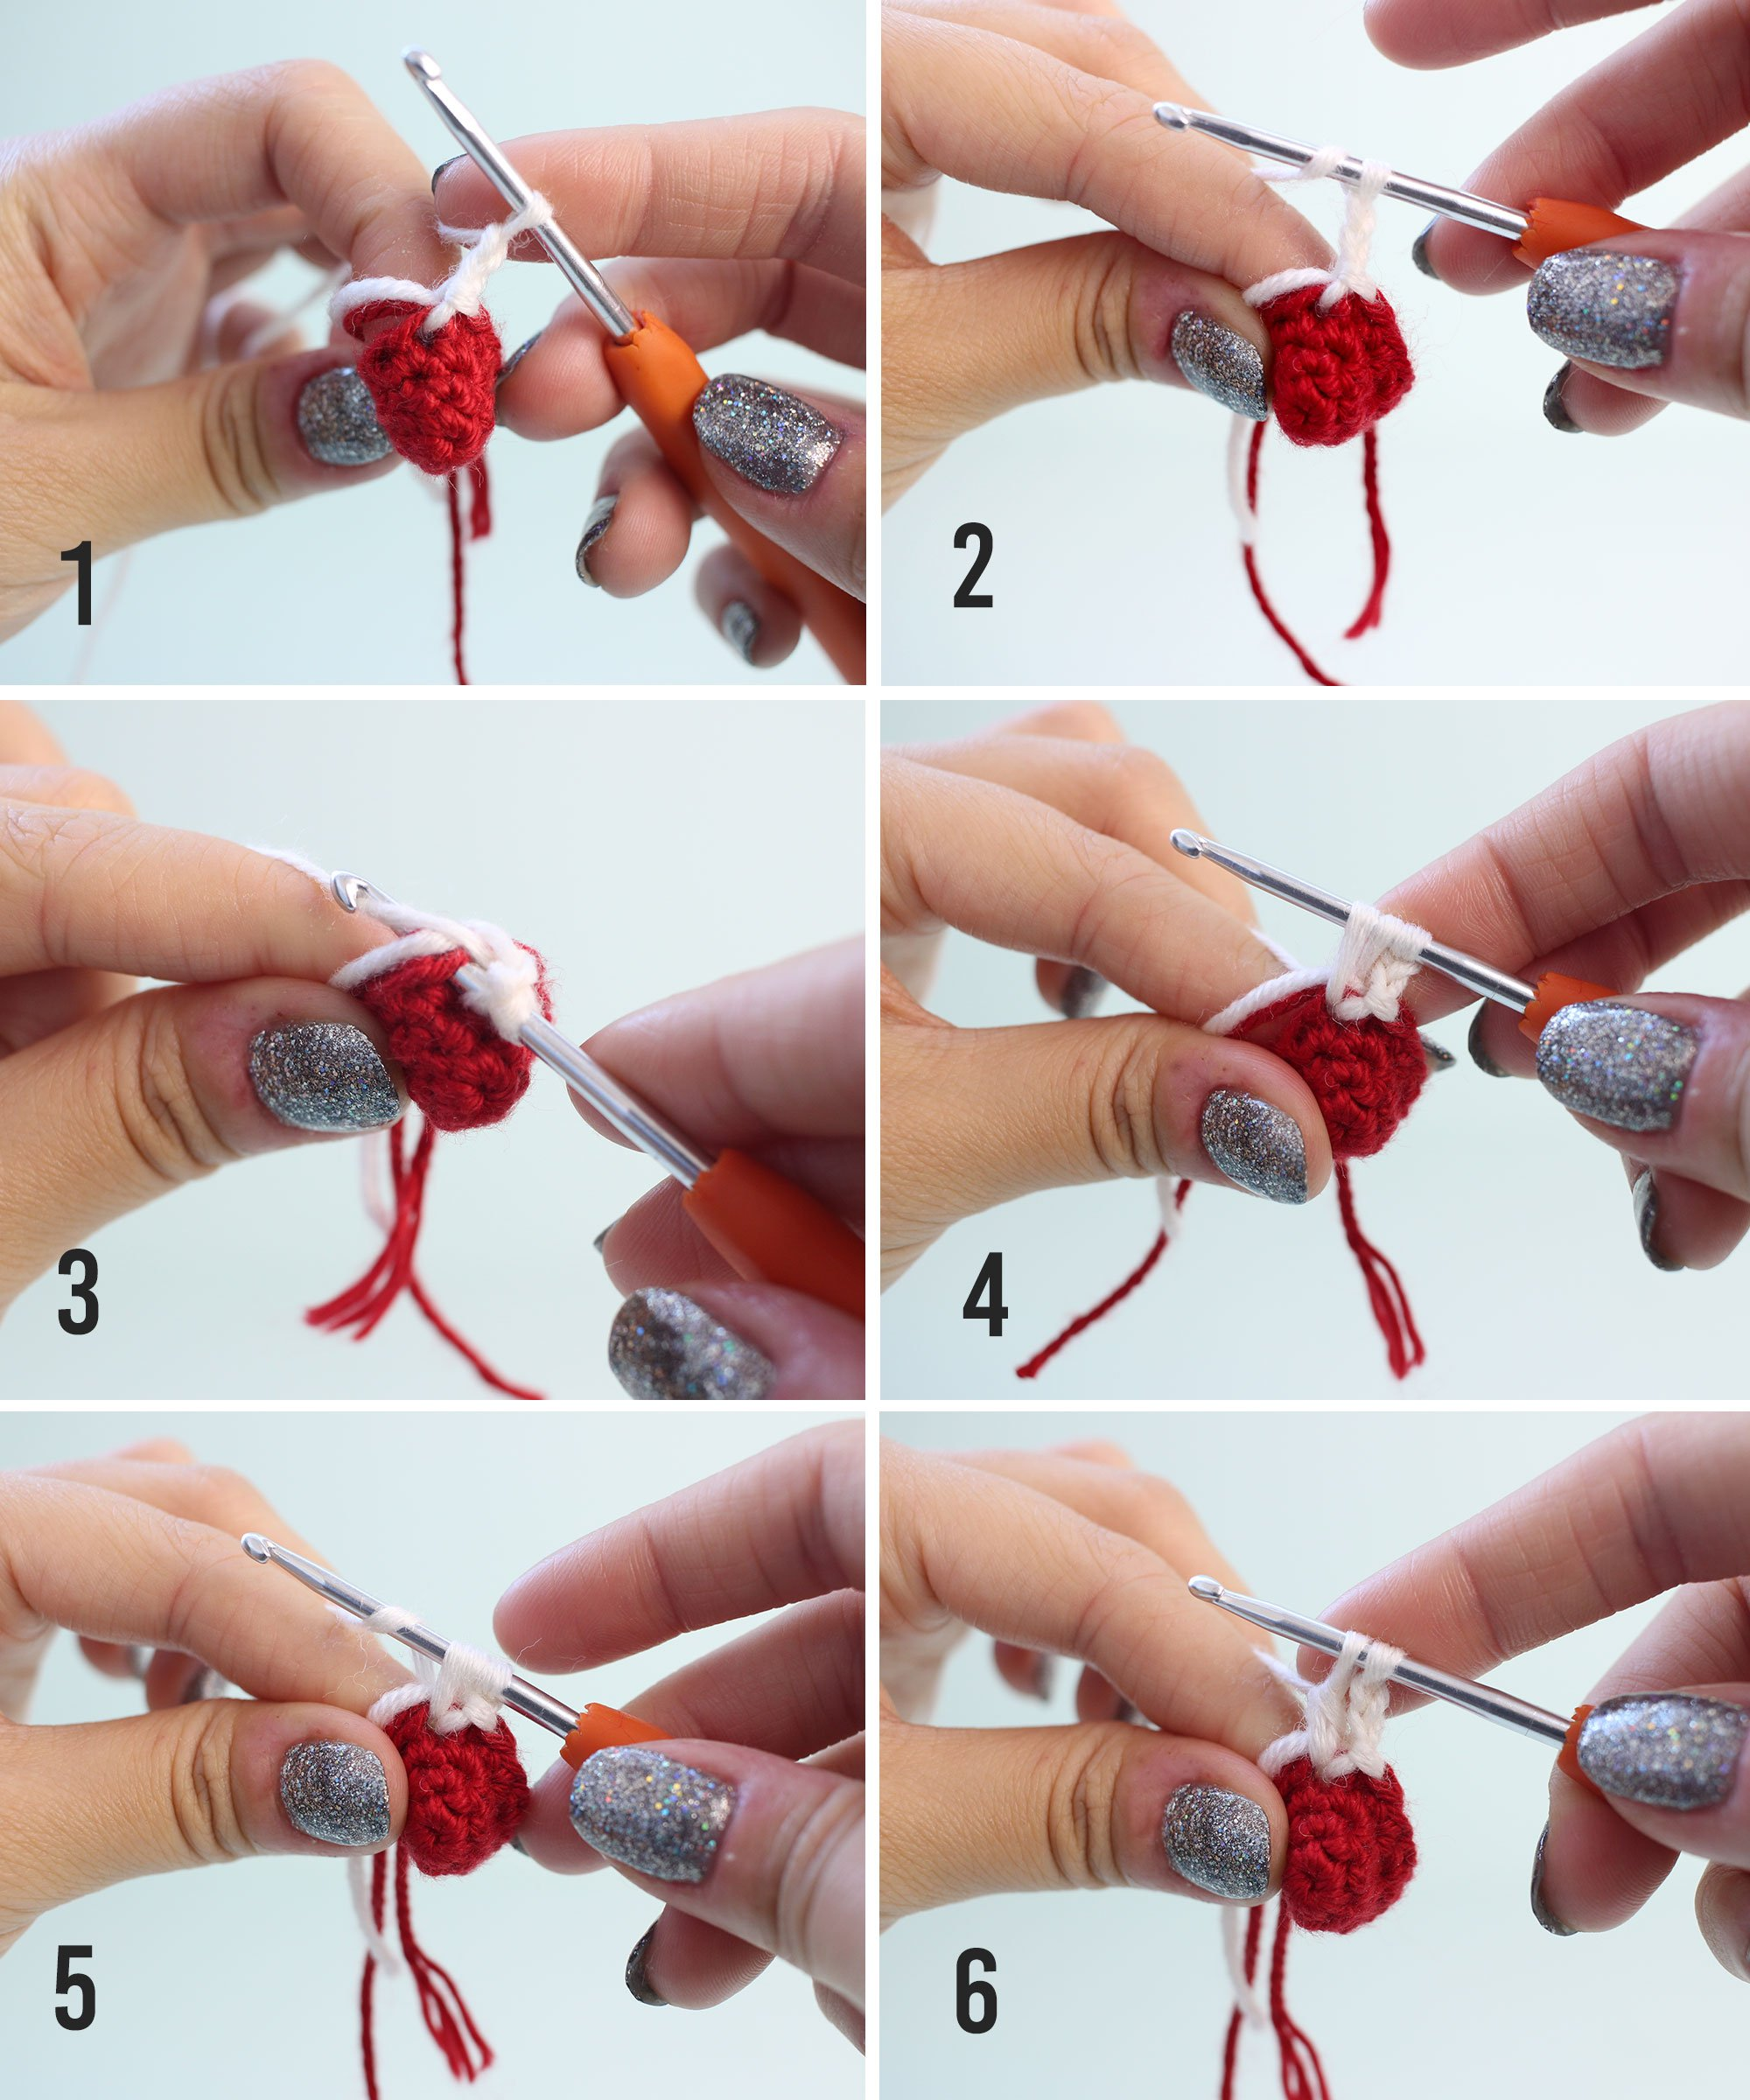 5dc bobble crochet step by step instructions